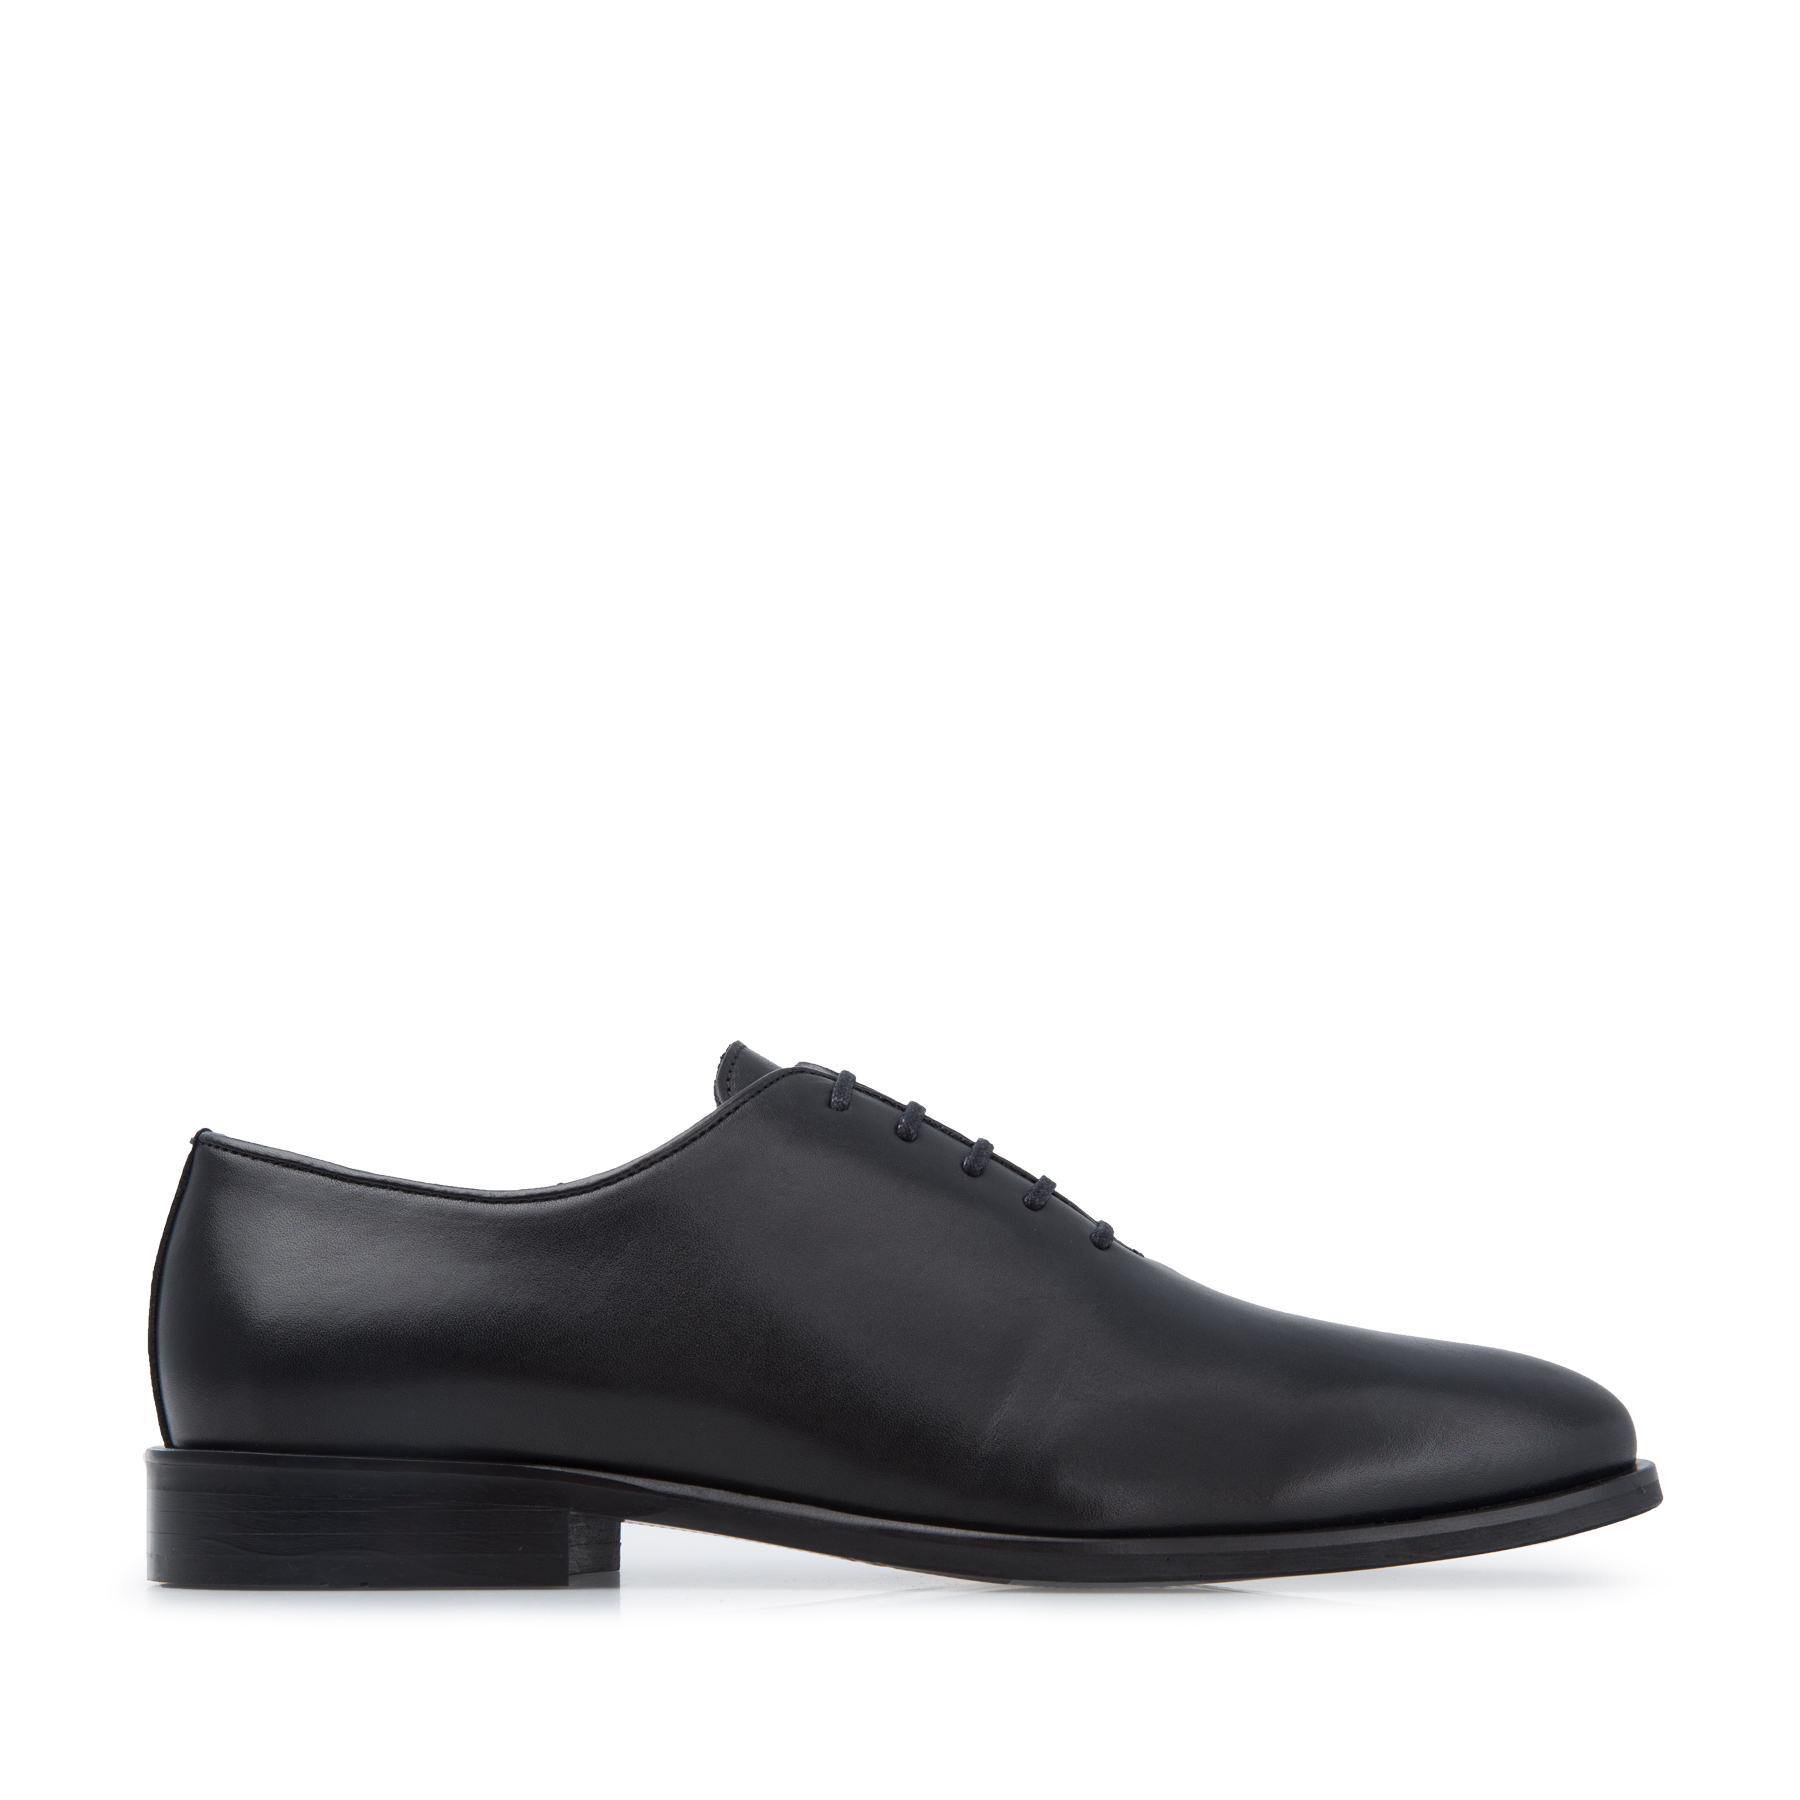 F. Marcetti Classic Leather Shoes MALE SHOES 4956283000